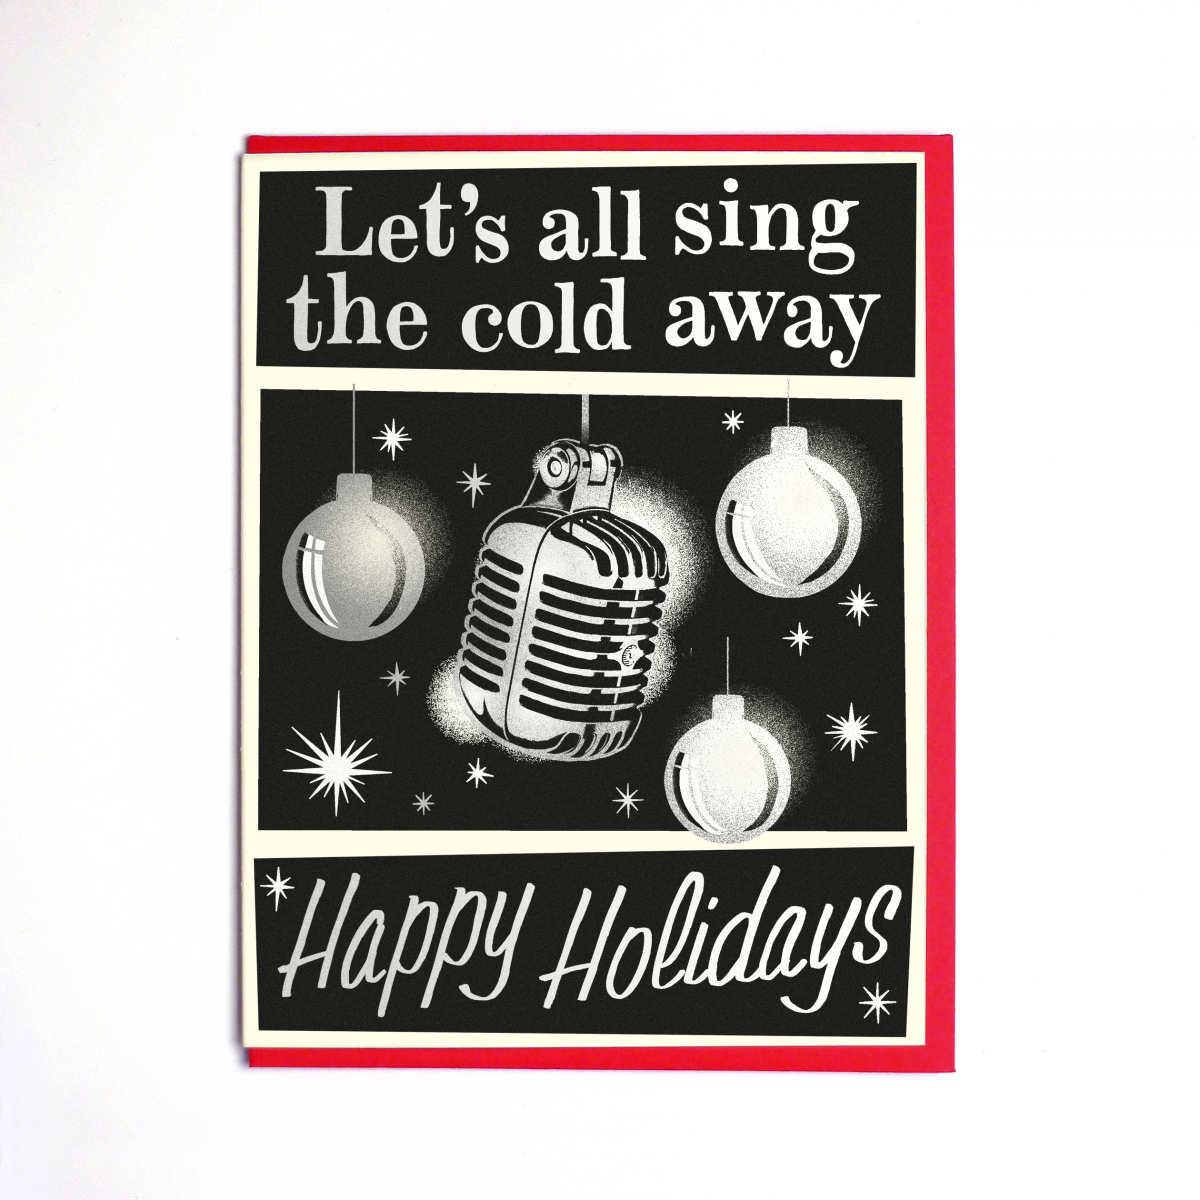 Kid Icarus Holiday - Lets all sing the cold away